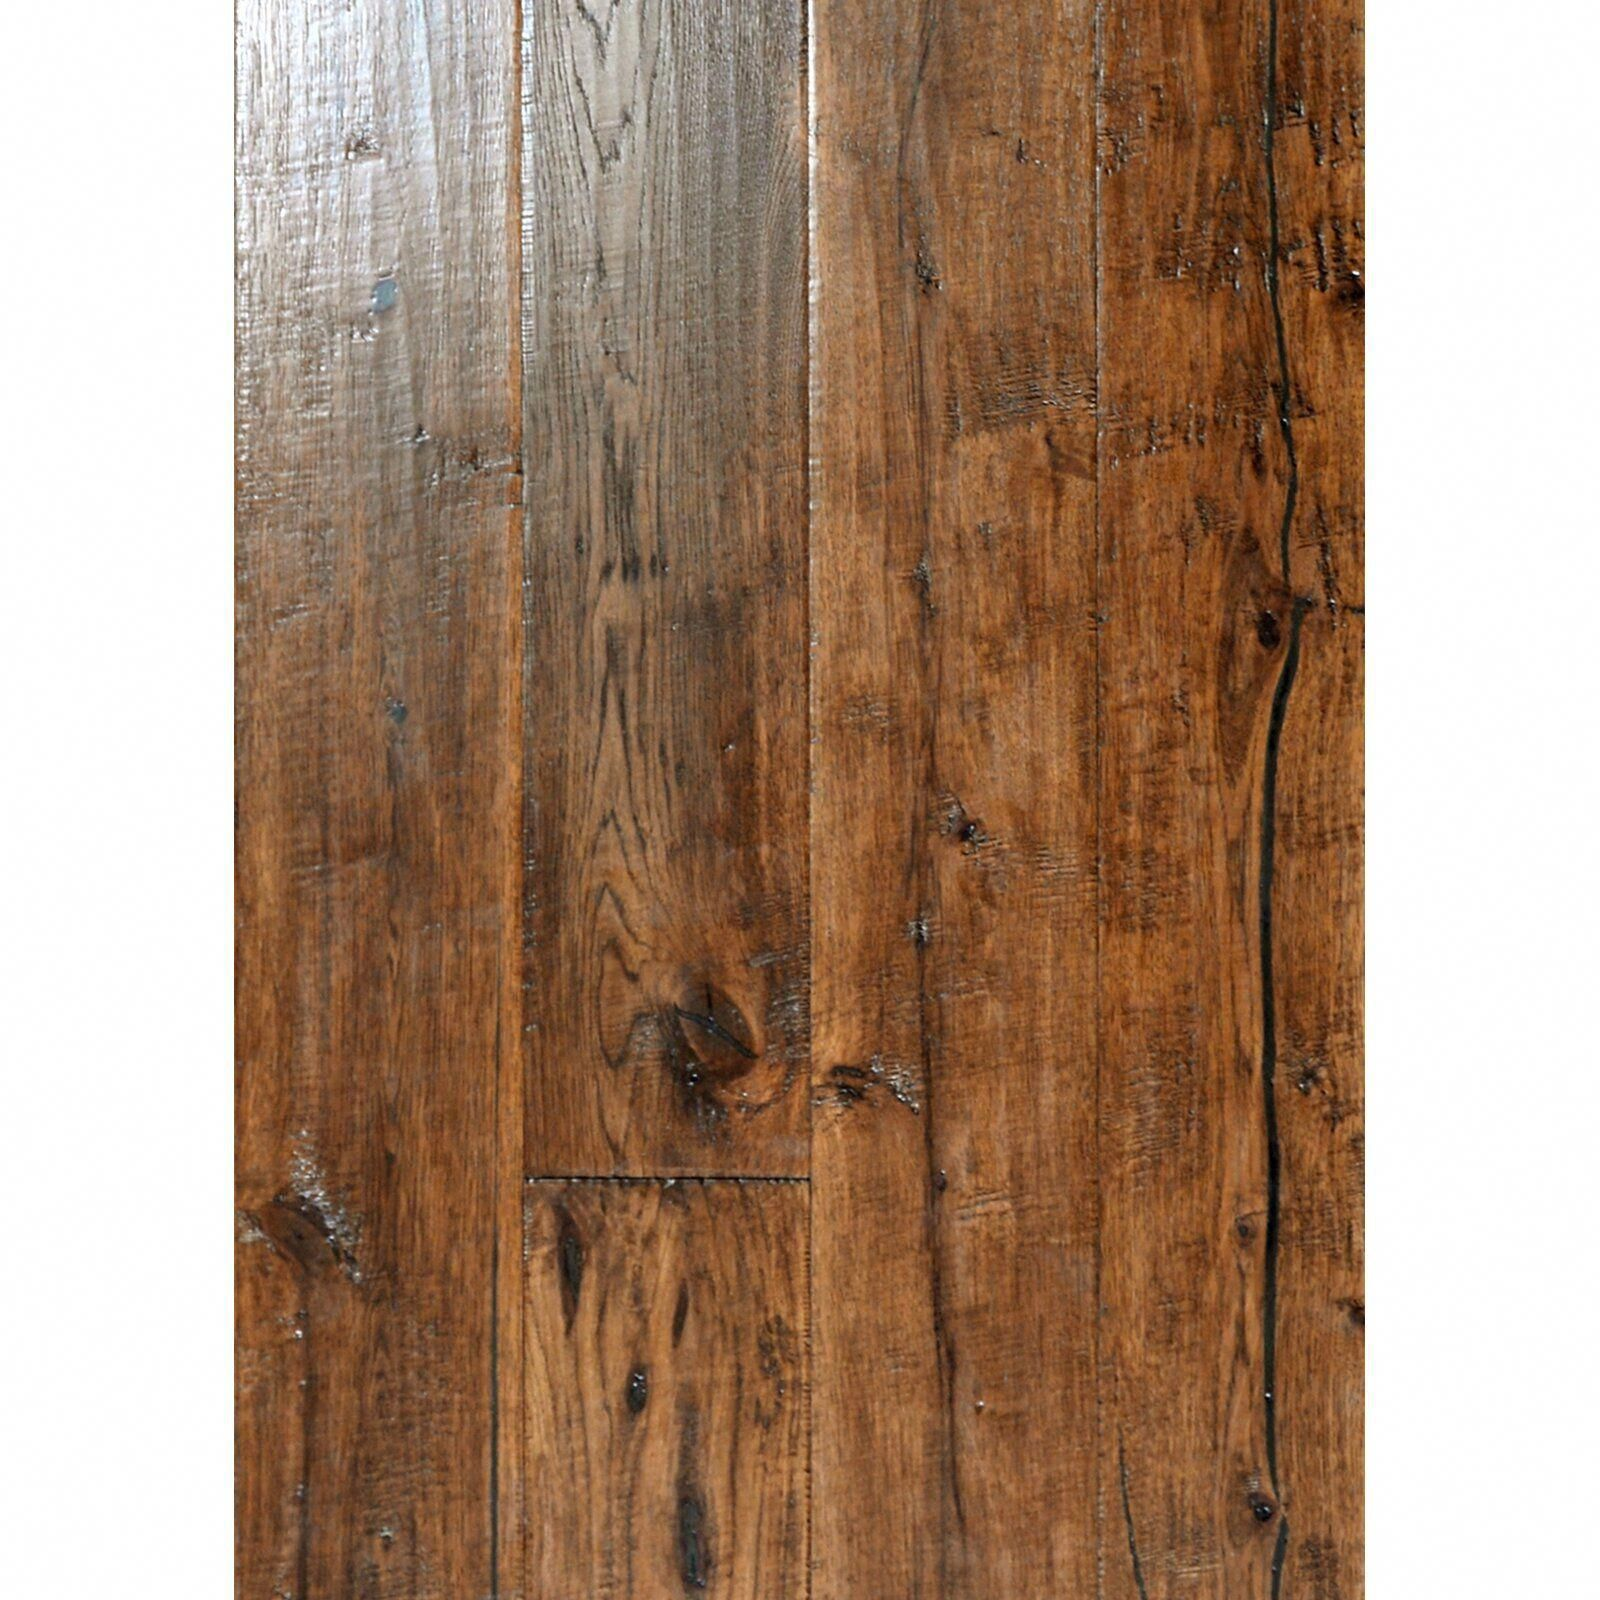 Marvelous wood flooring cleaning review our blog for a